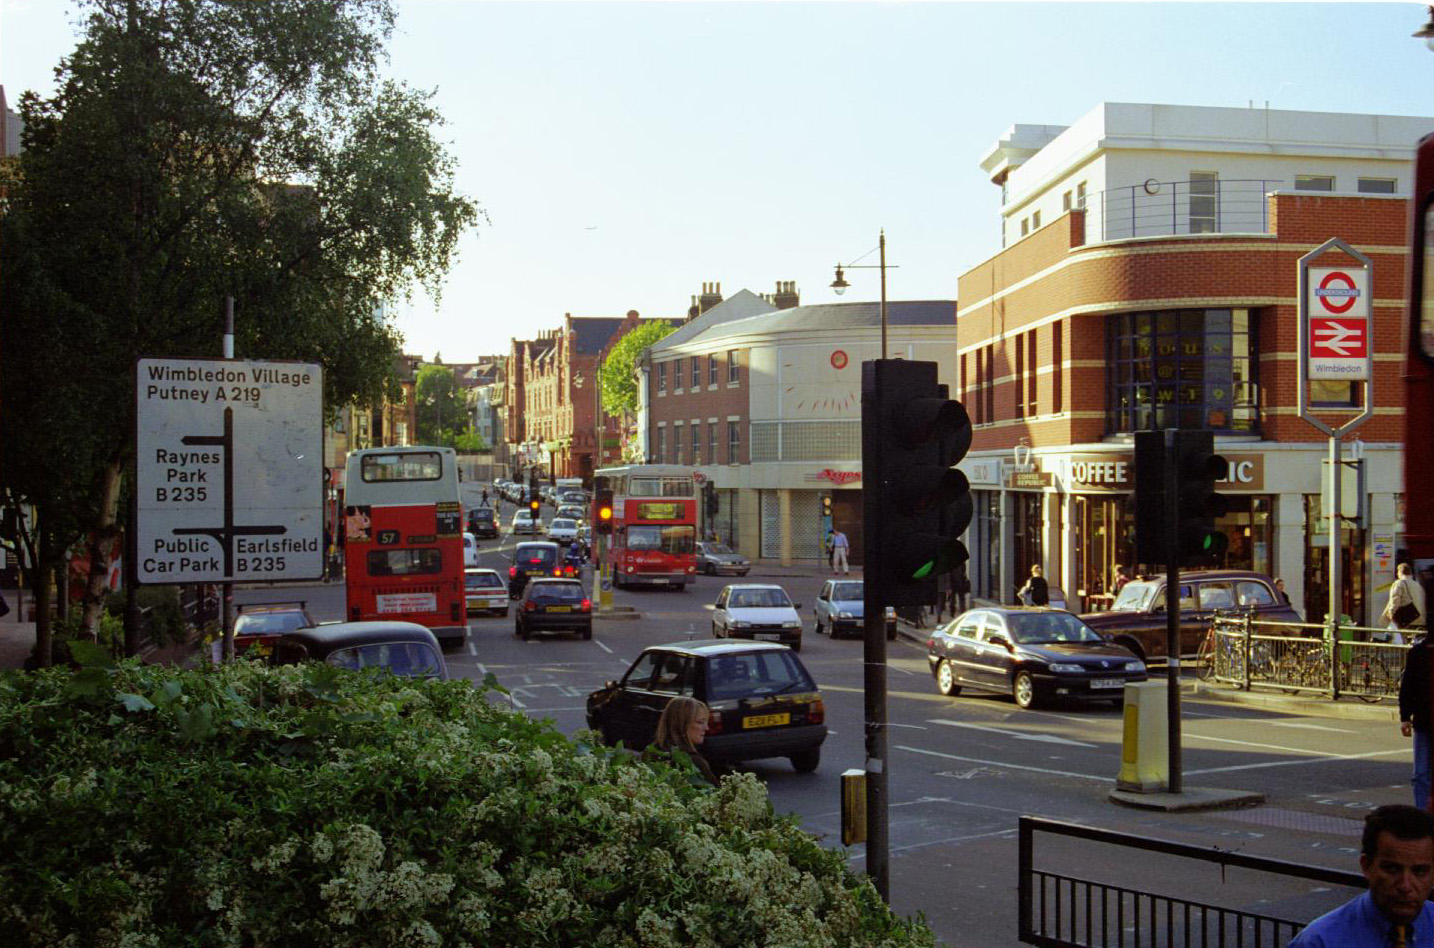 Wimbledon Hill Road - May 2000